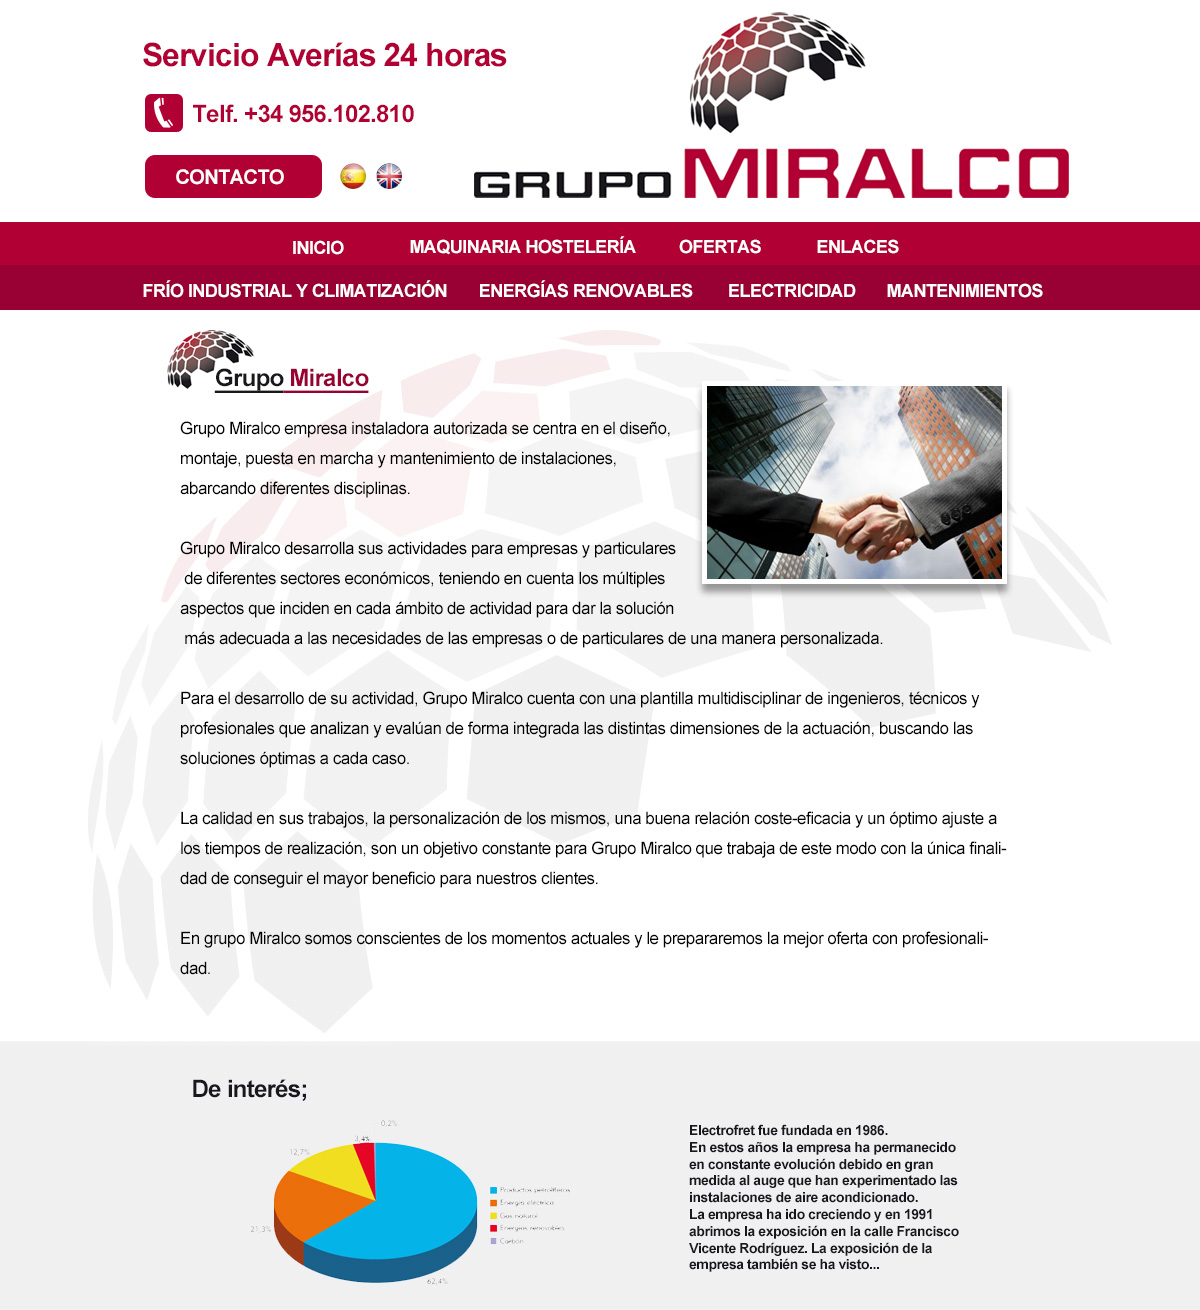 Grupo Miralco - Html, Css, Php, Photoshop. Año 2011